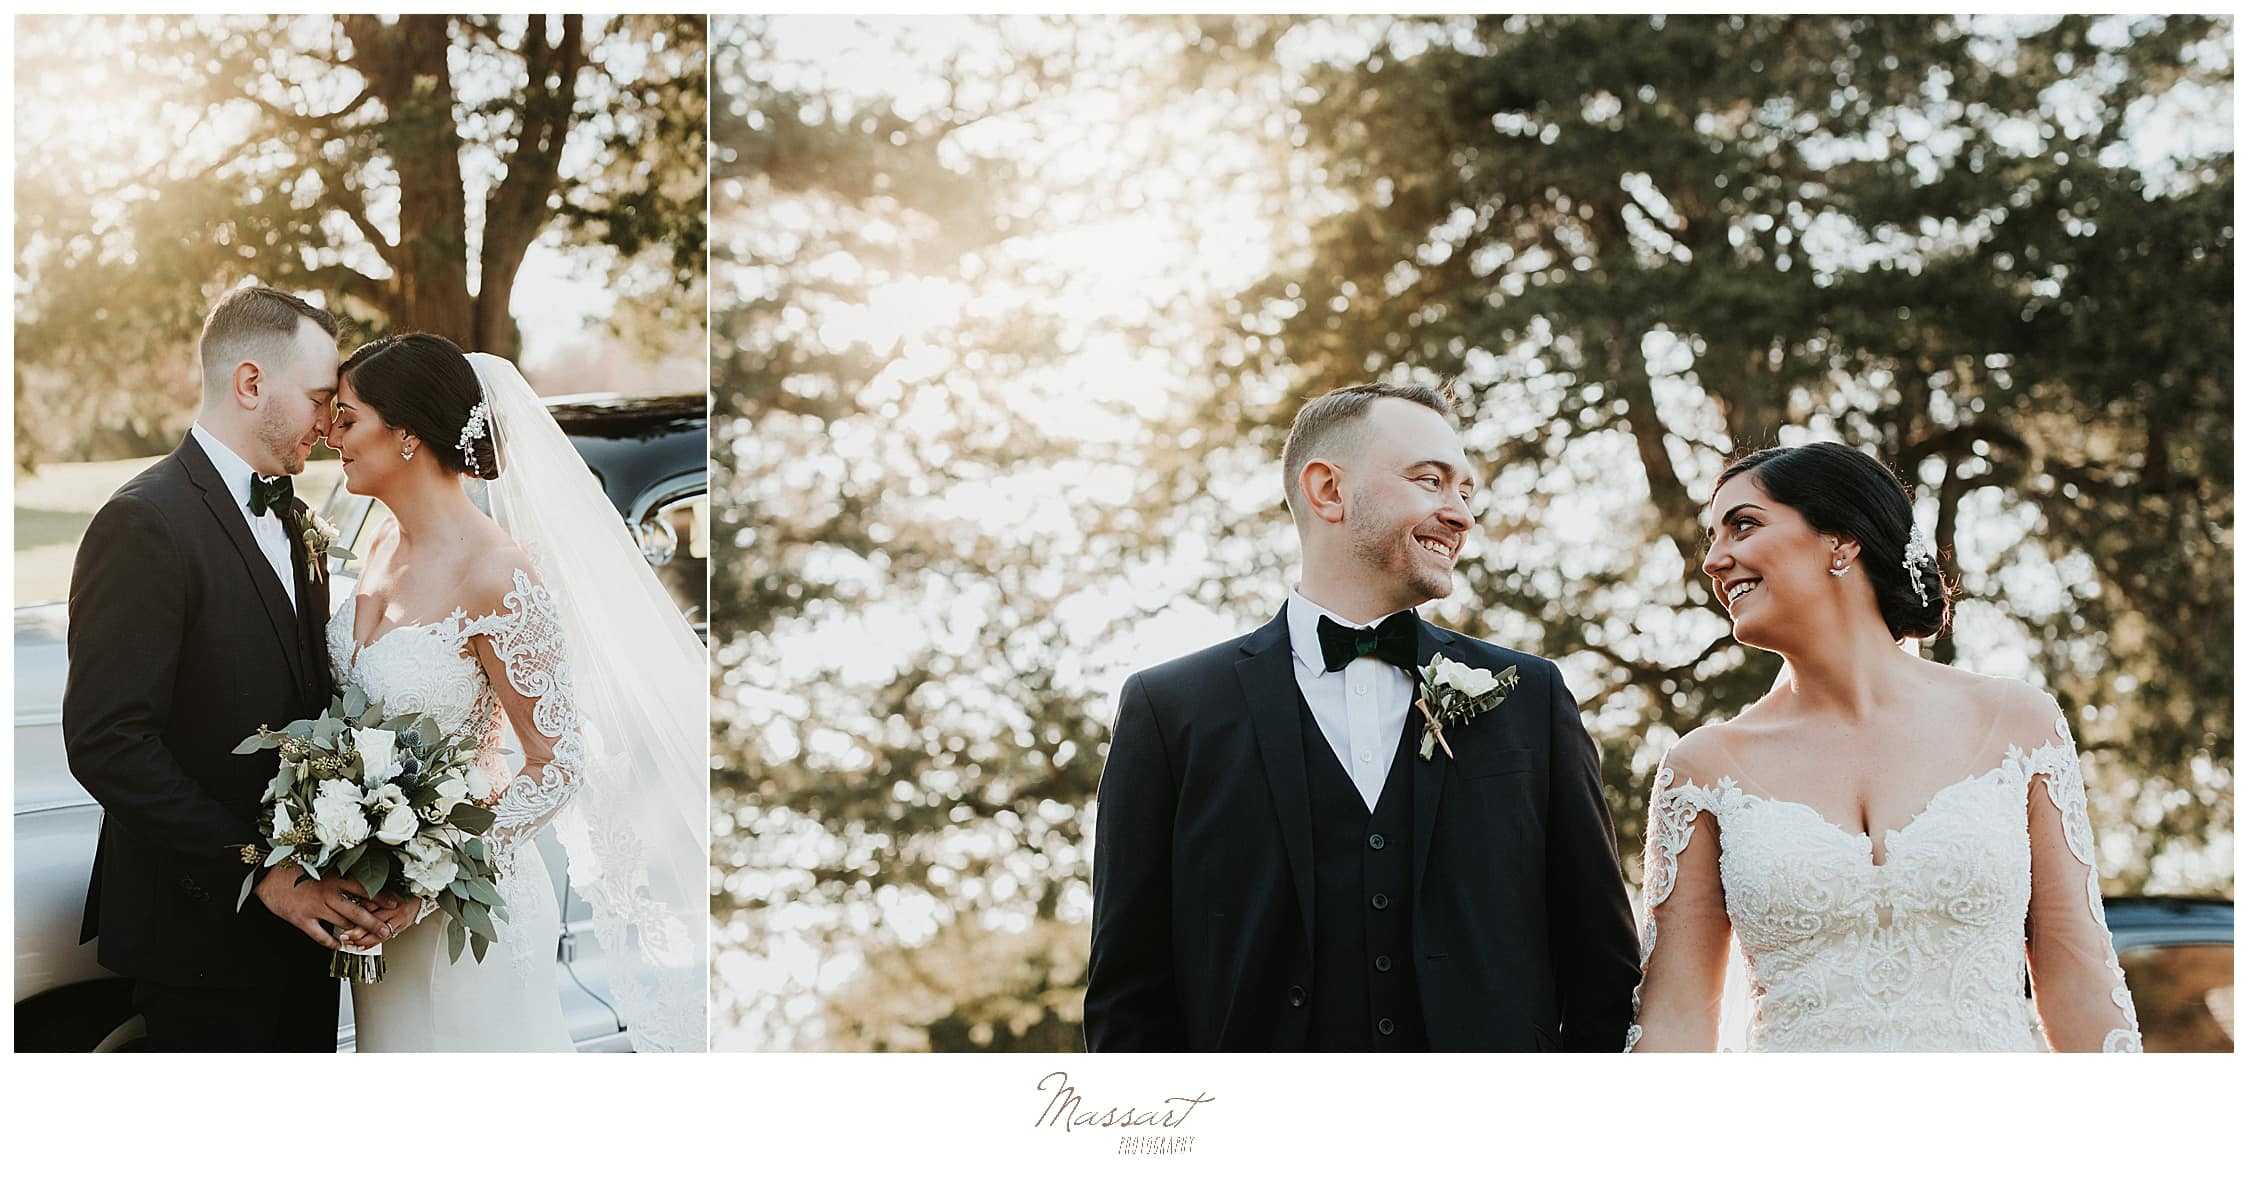 classic emotional fall wedding portraits by Massart Photography in MA